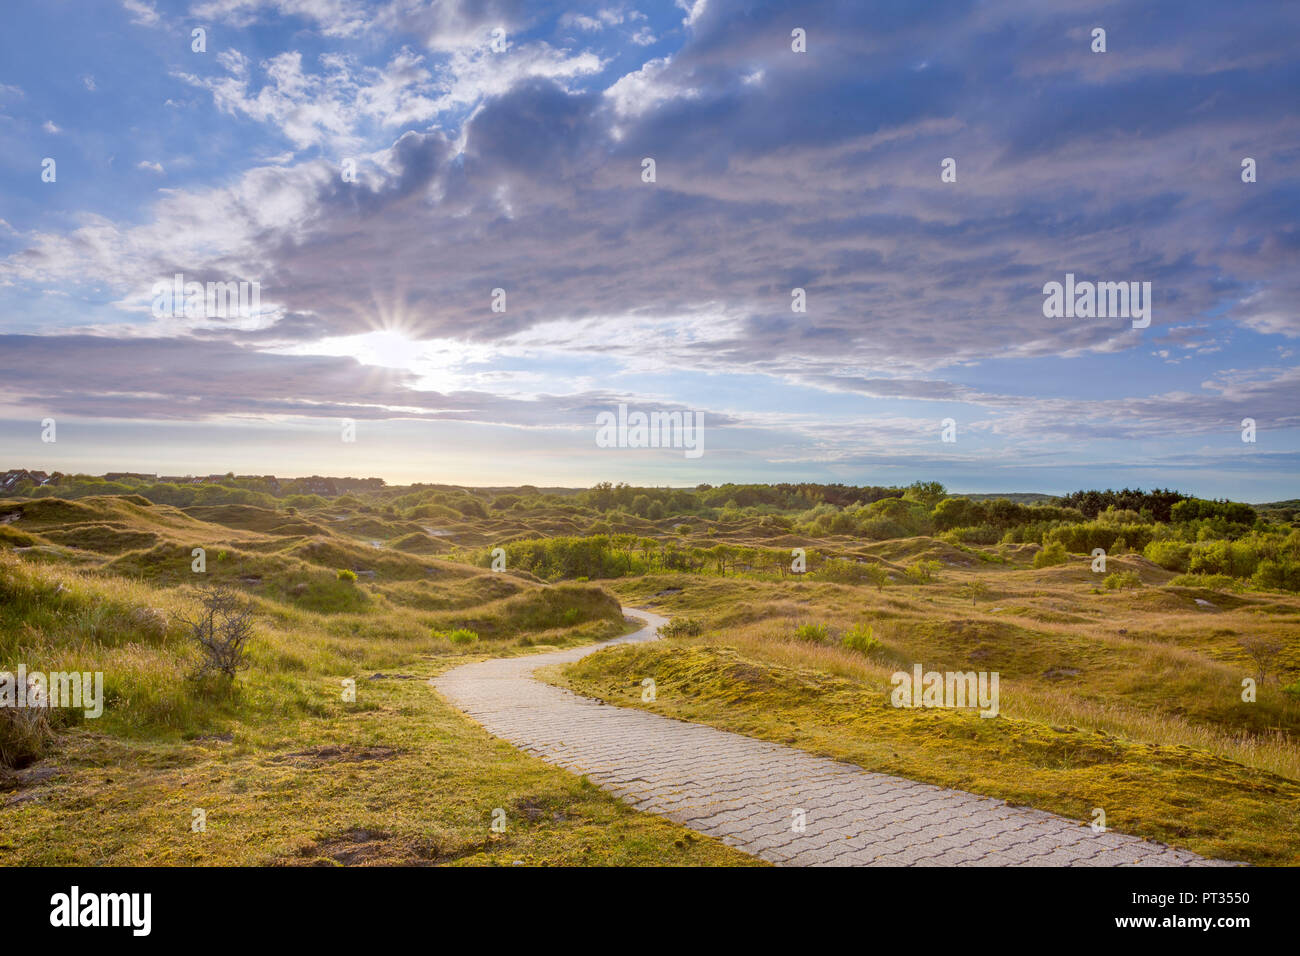 Trail winding through Dunes on the island of Baltrum, just a trail for walking, for being in that landscape Stock Photo